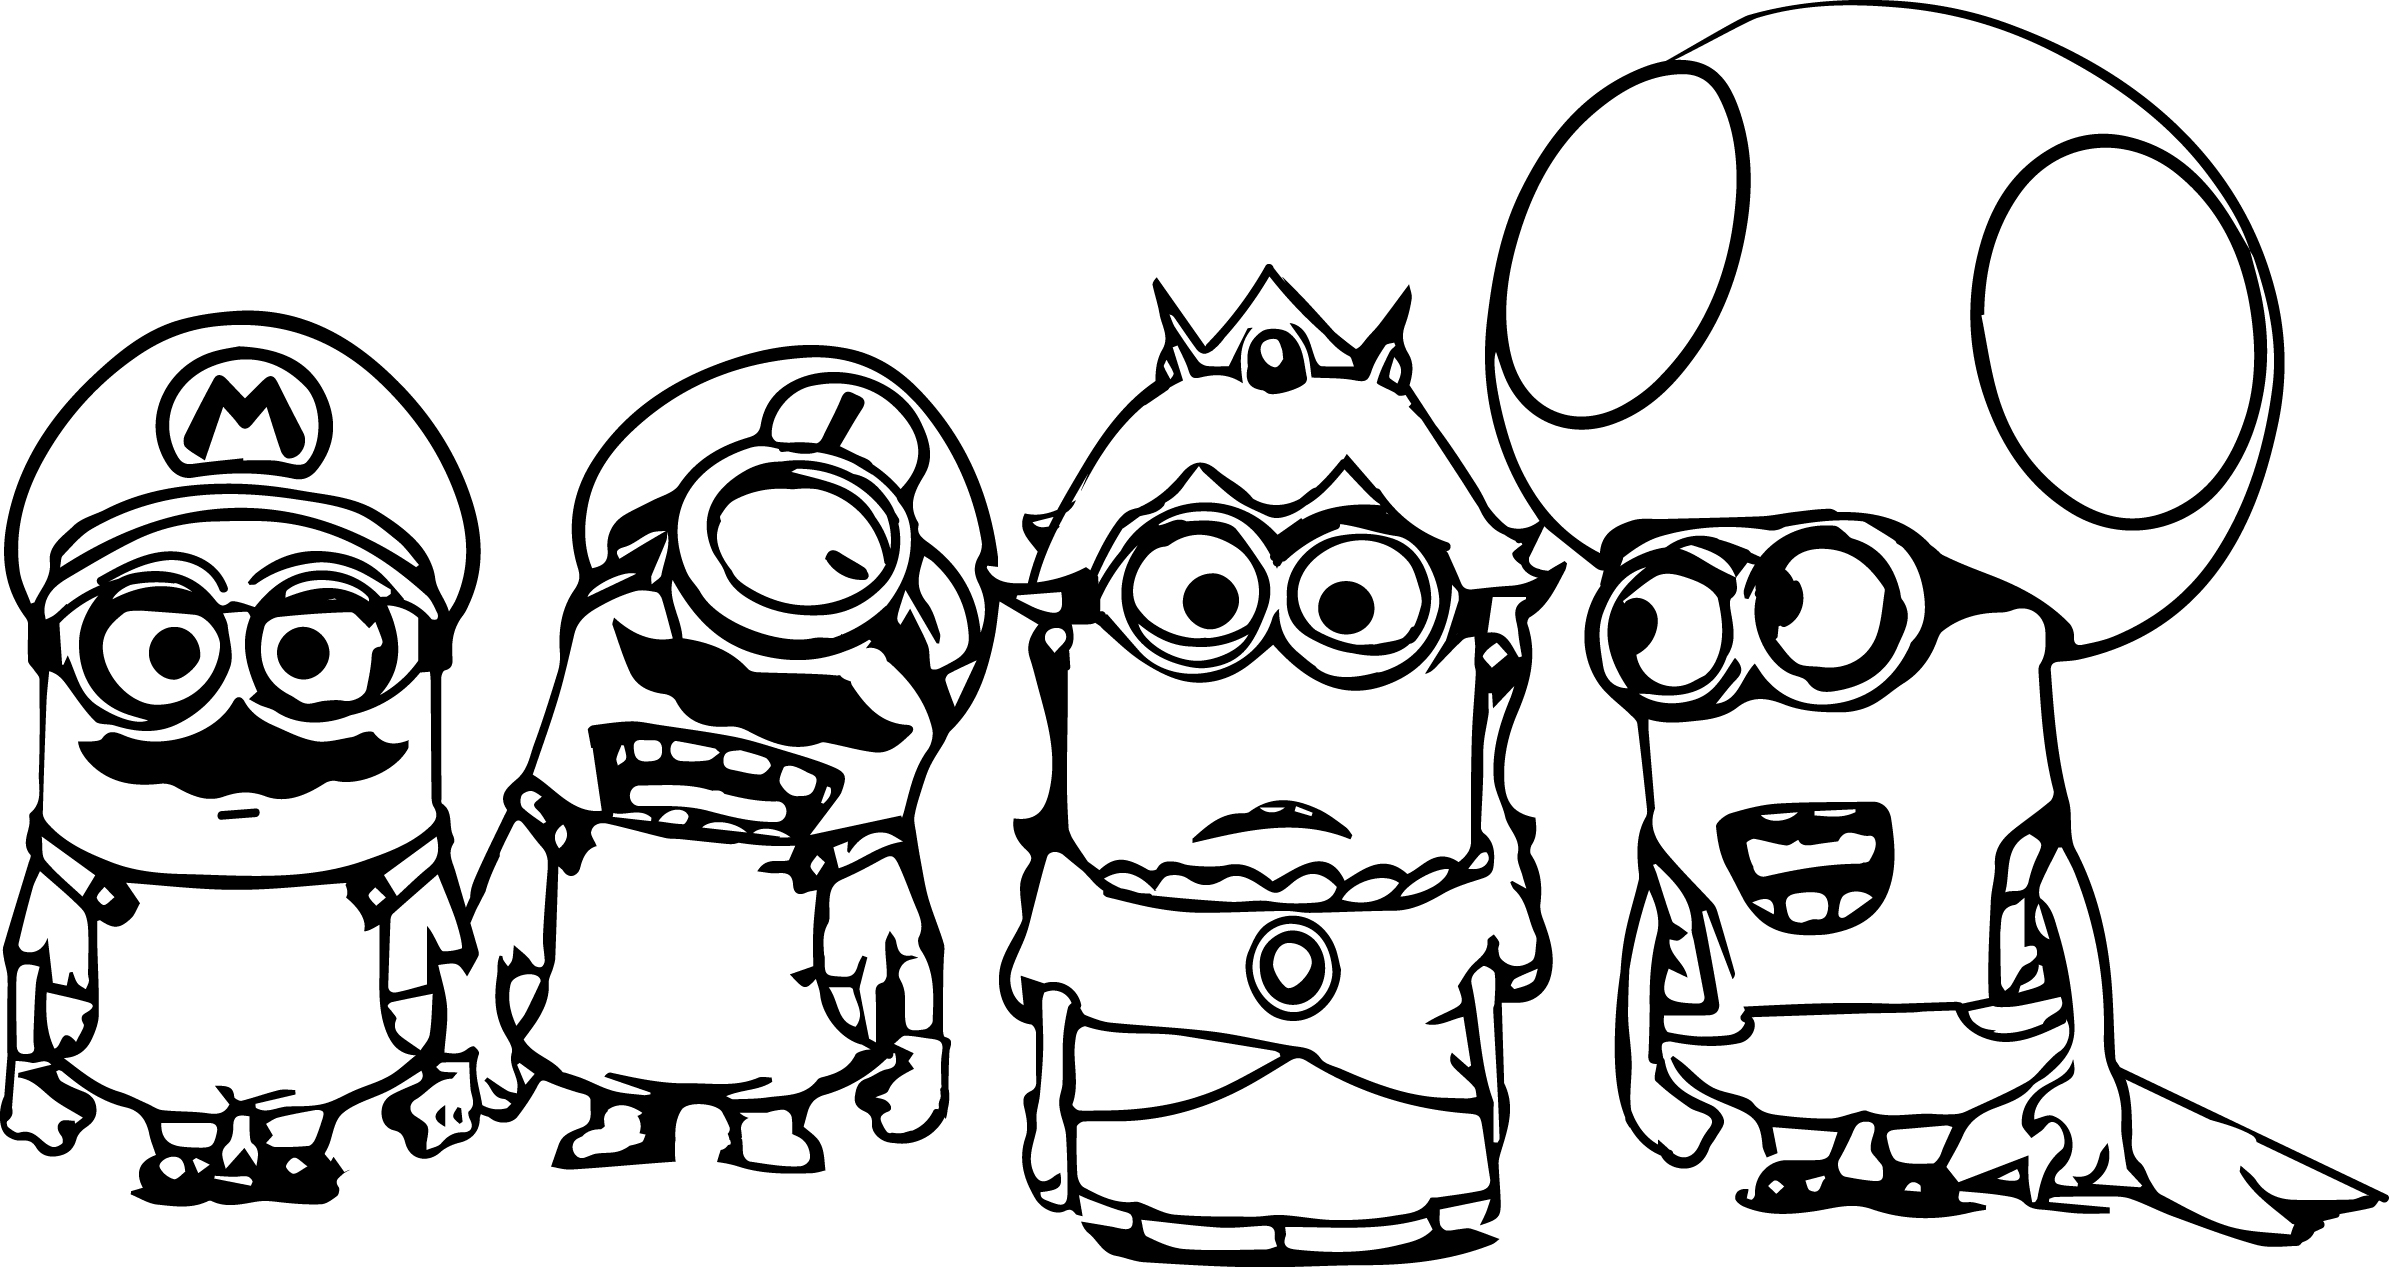 minion coloring pictures minion coloring pages free download on clipartmag pictures minion coloring